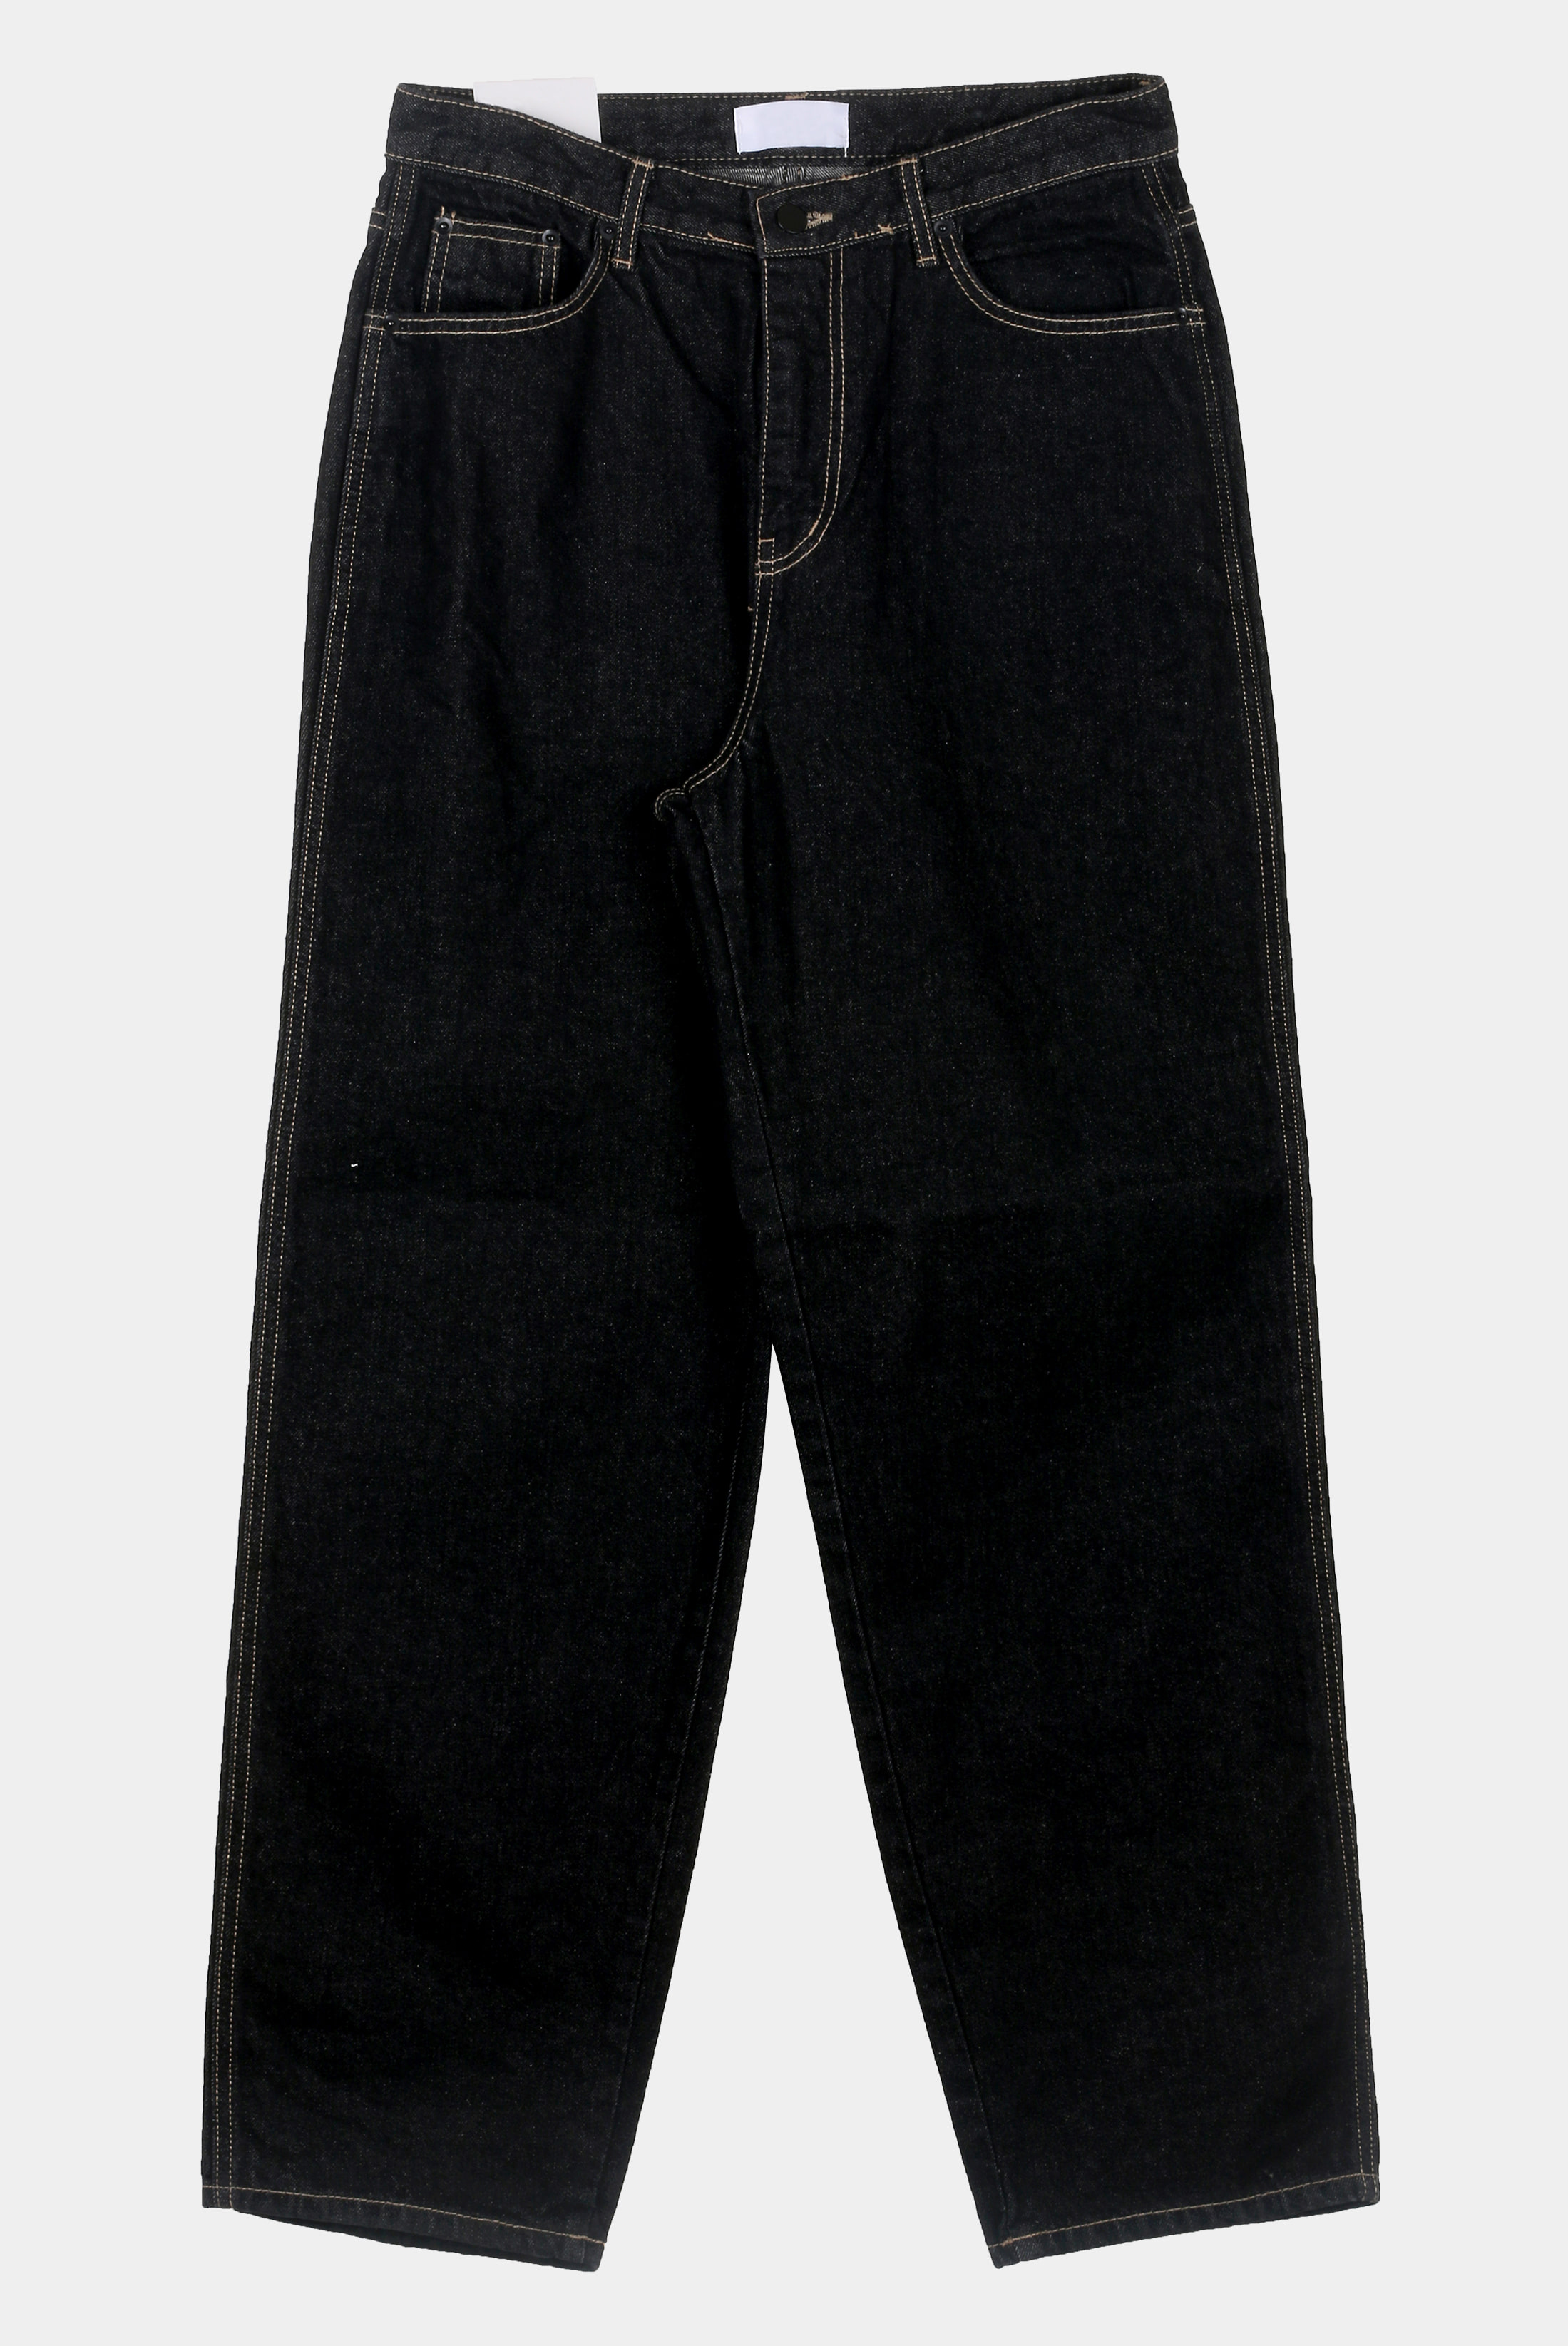 Hard_Denim Retro Wide_Pants